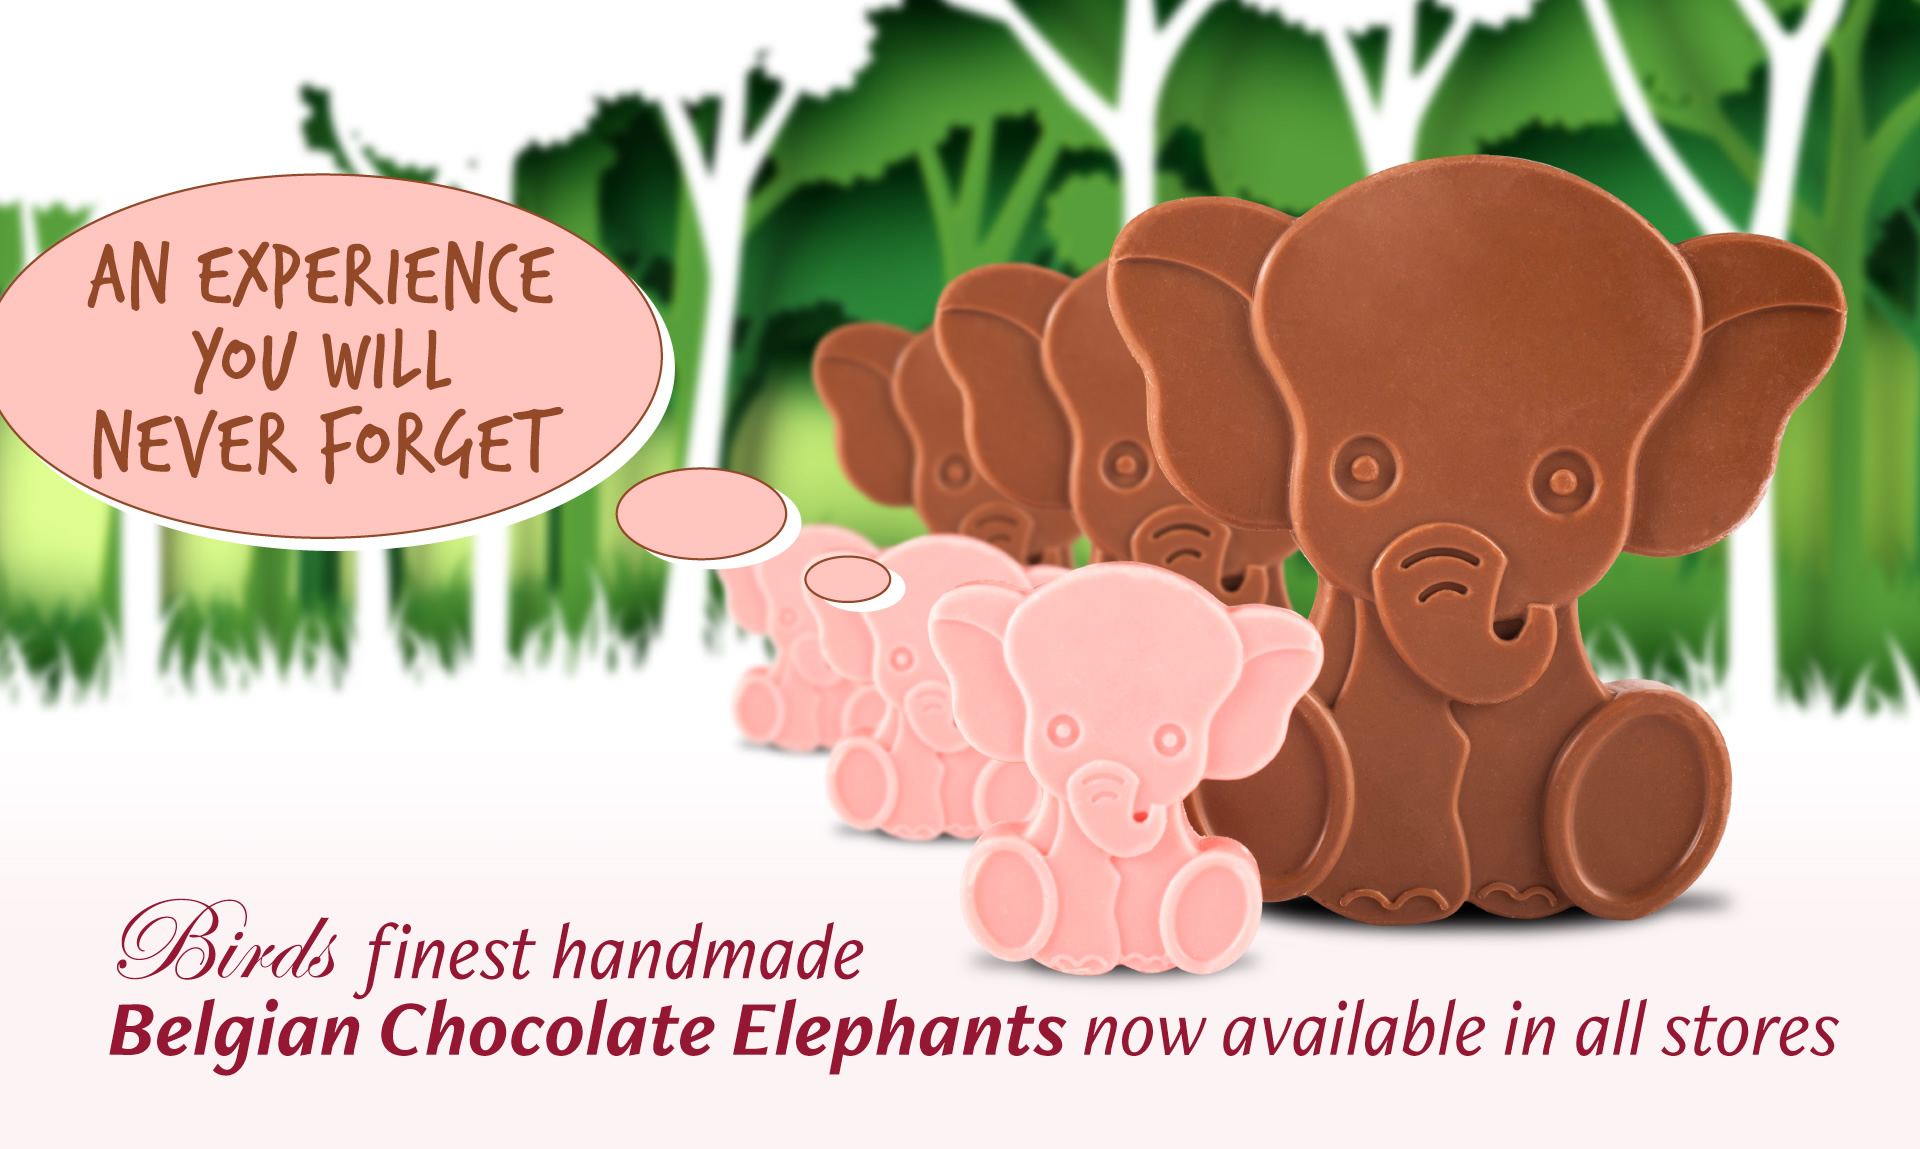 Birds finest handmade Belgian Chocolate Elephants now available in all stores